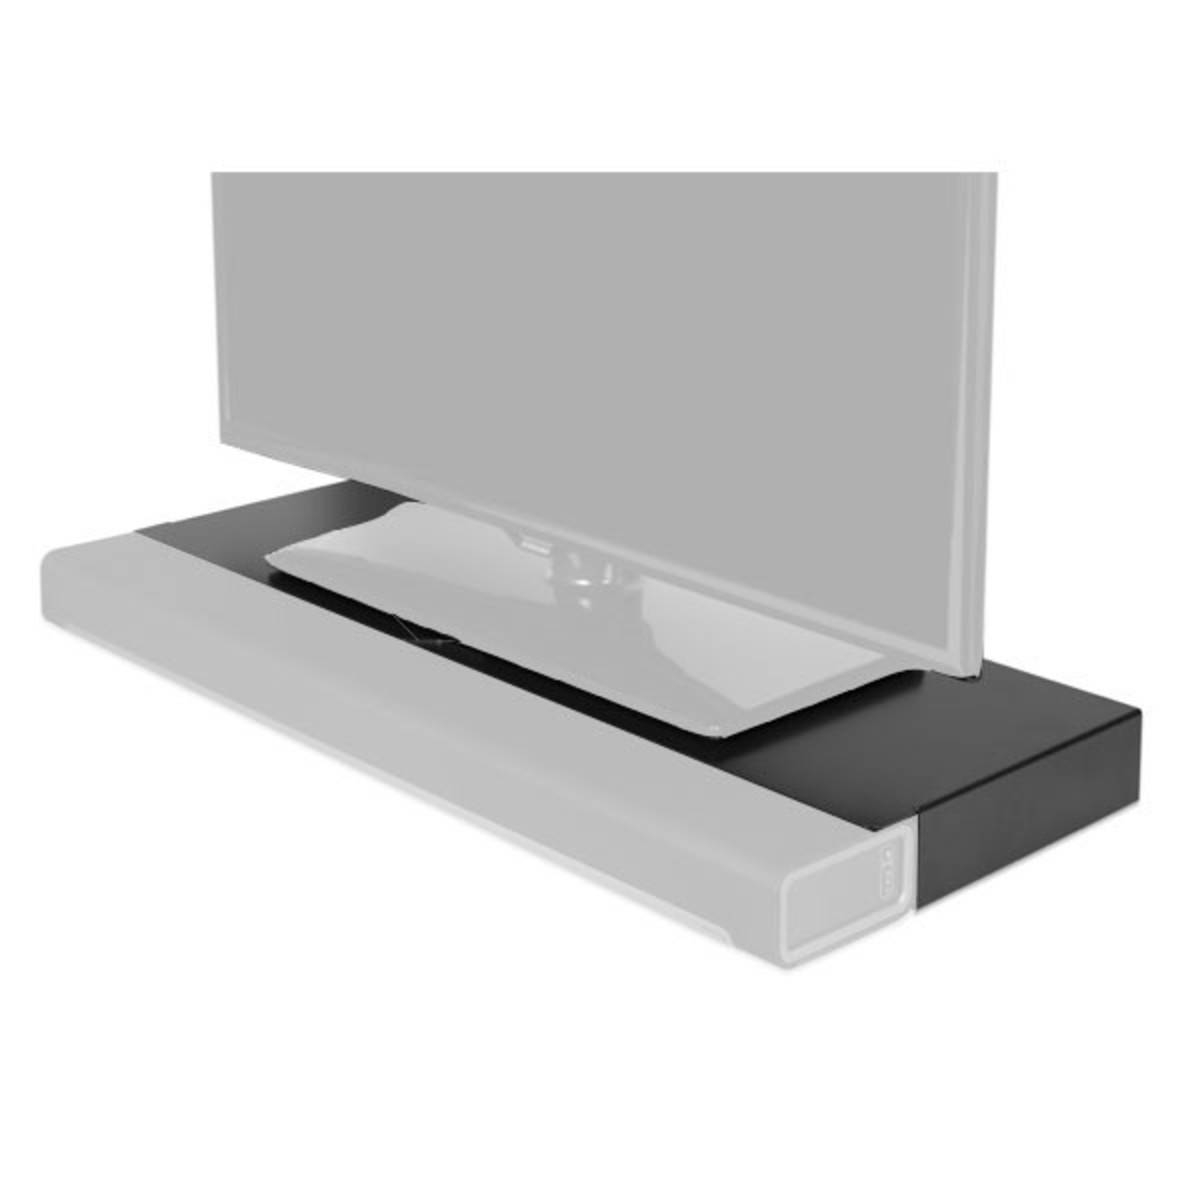 Flexson Tv Stand For Sonos Playbar, Black At Gear4Music With Regard To Sonos Tv Stands (View 7 of 15)